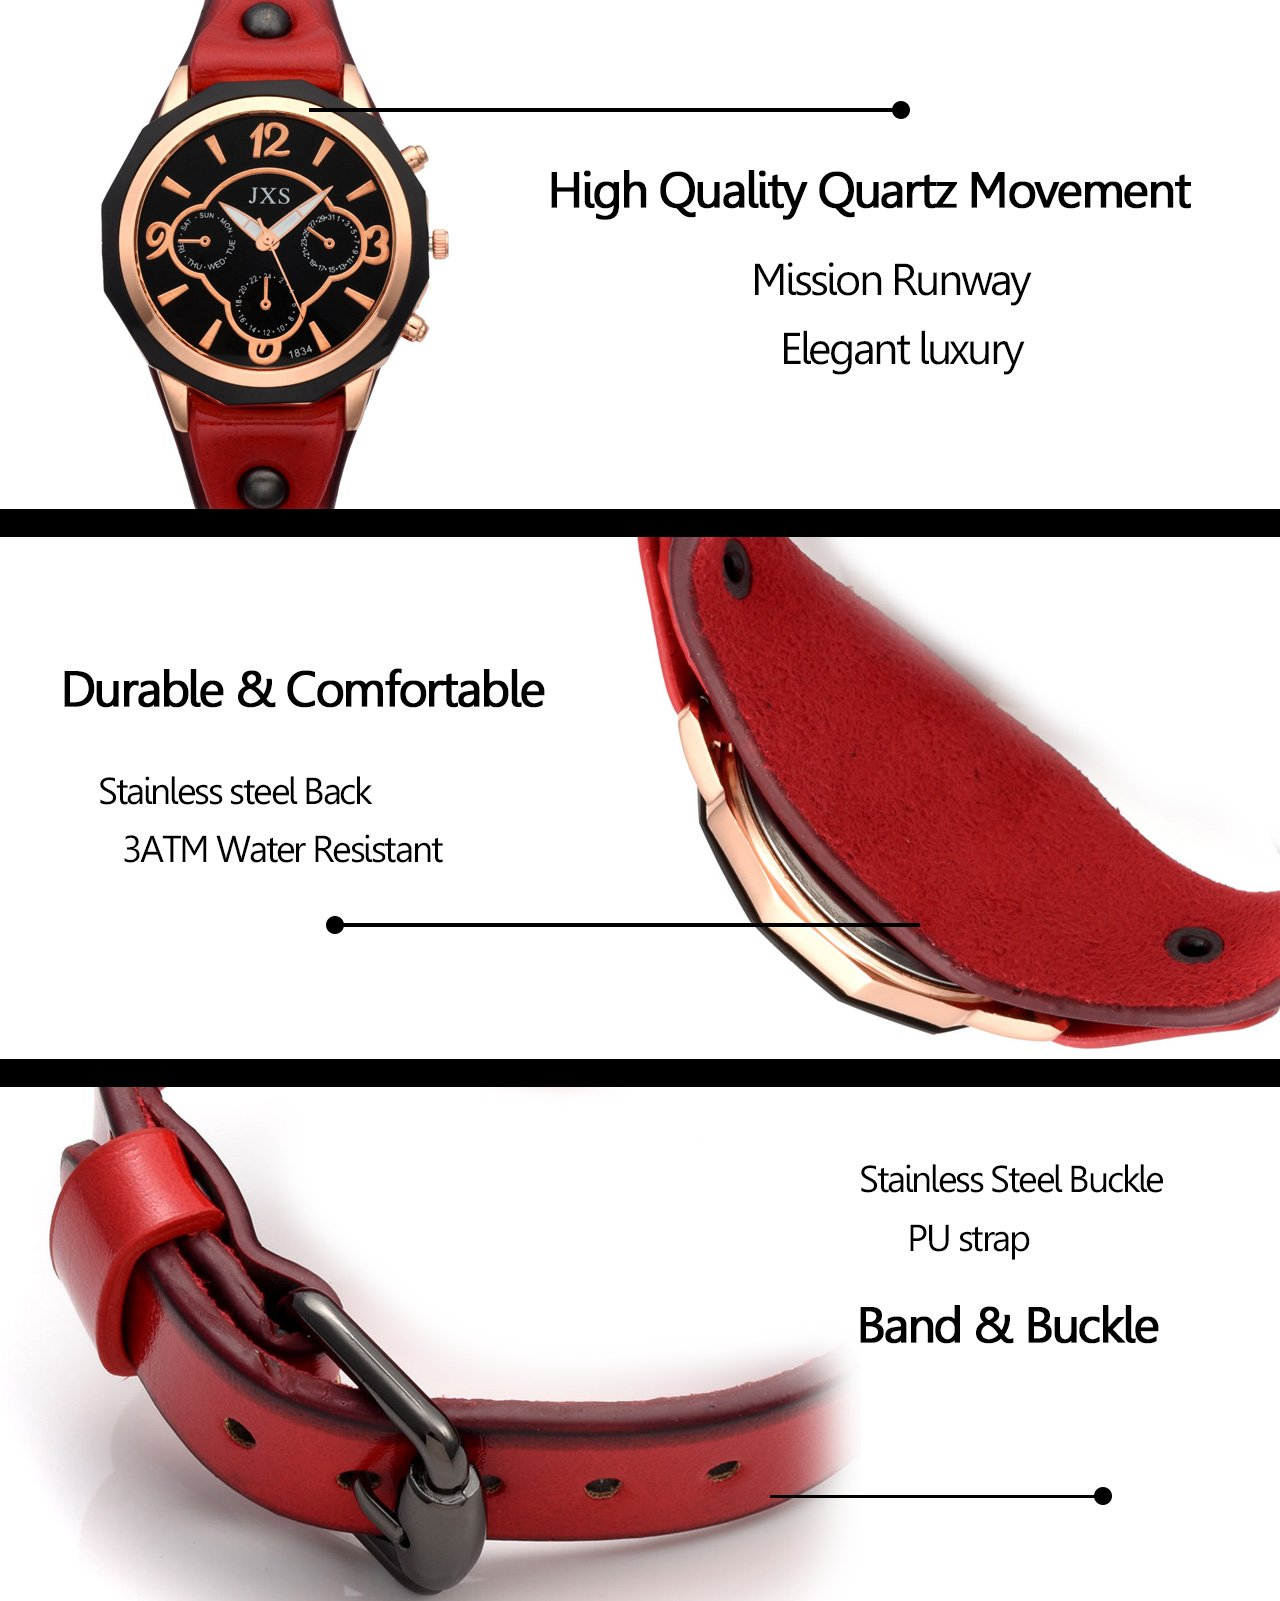 Top Plaza Womens Mens Fashion Rose Gold Tone Leather Analog Quartz Wrist Watch Arabic Numerals Big Face Casual Sport Watch - Black by Top Plaza (Image #4)